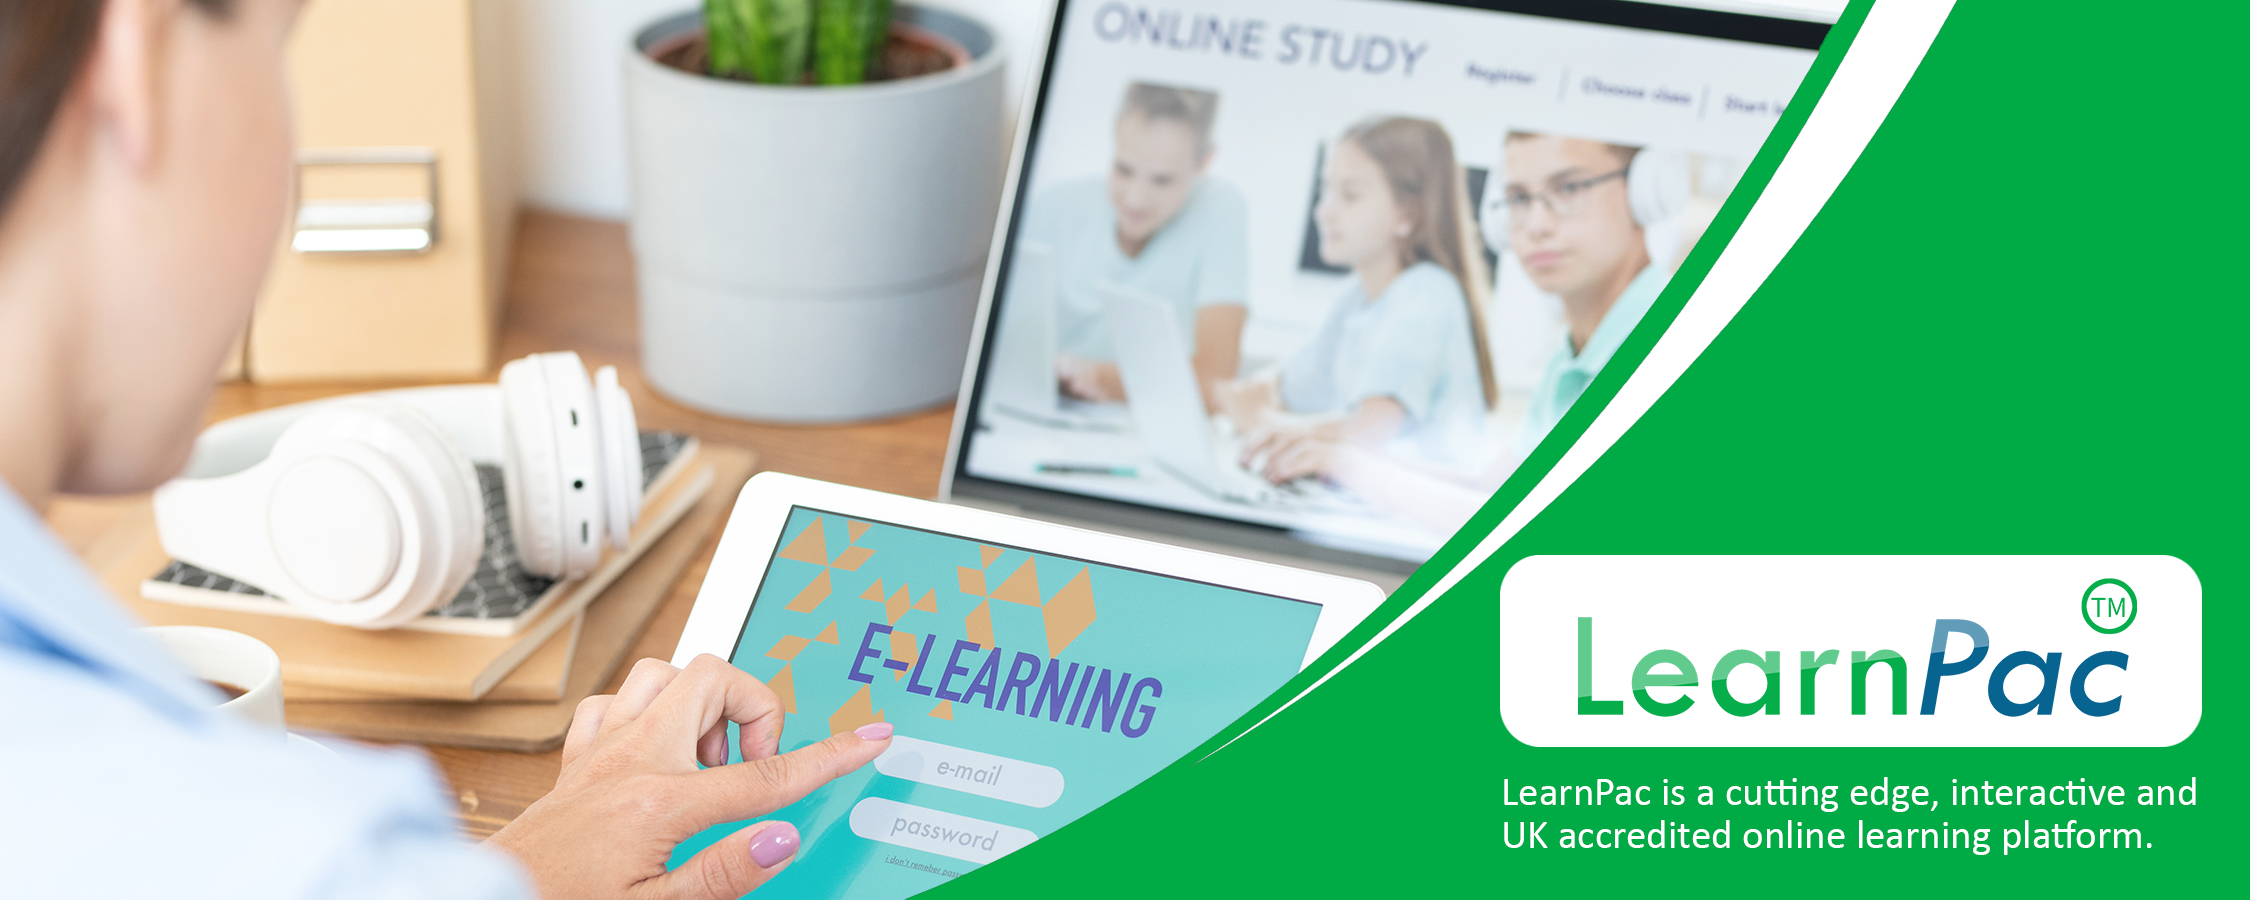 Person-Centred Care Training - Online Learning Courses - E-Learning Courses - LearnPac Systems UK -